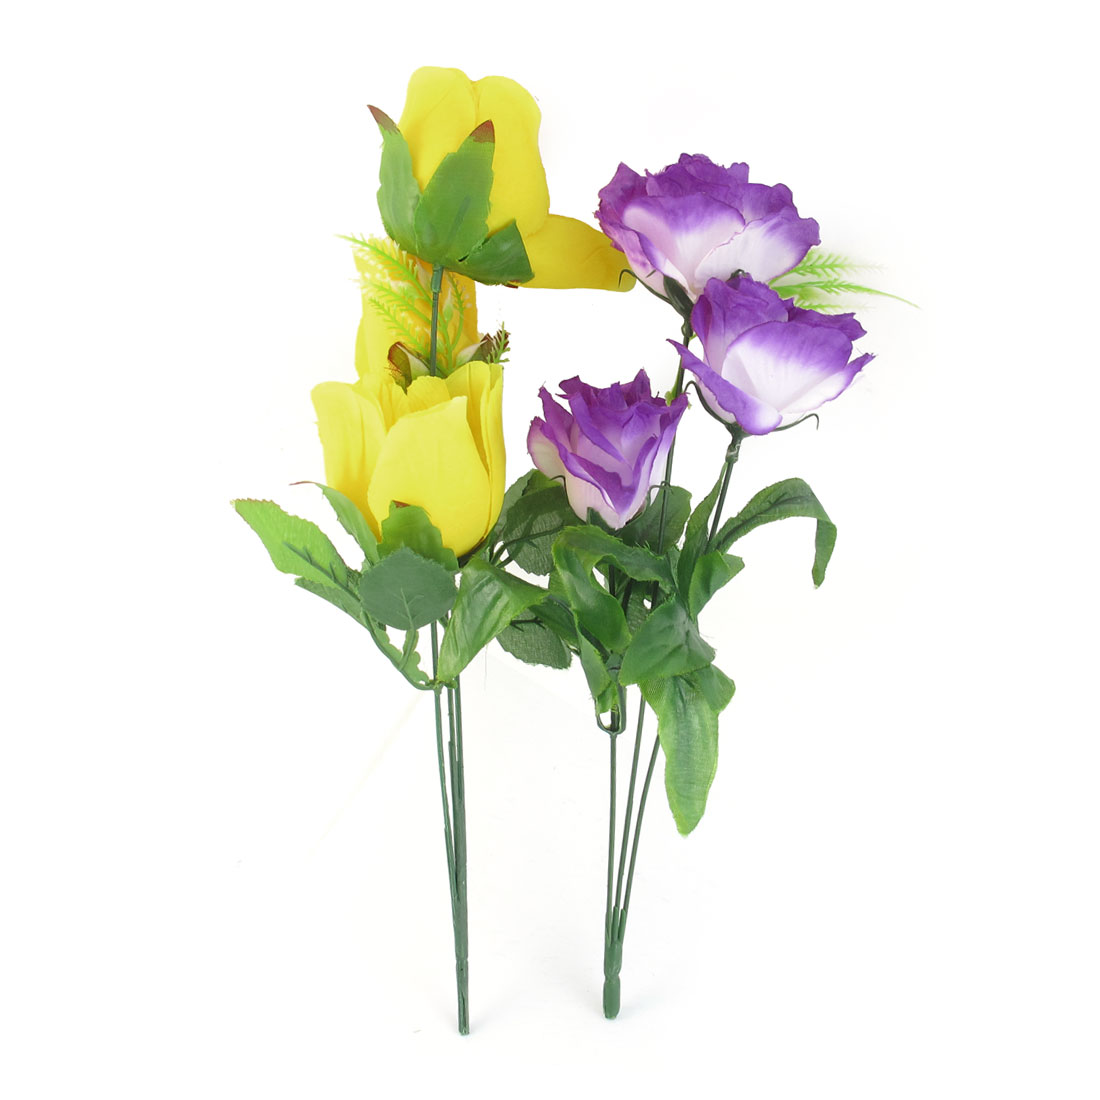 2 Pcs Yellow Purple Artificial Fabric Flower Bouquet Home Office Table Decor